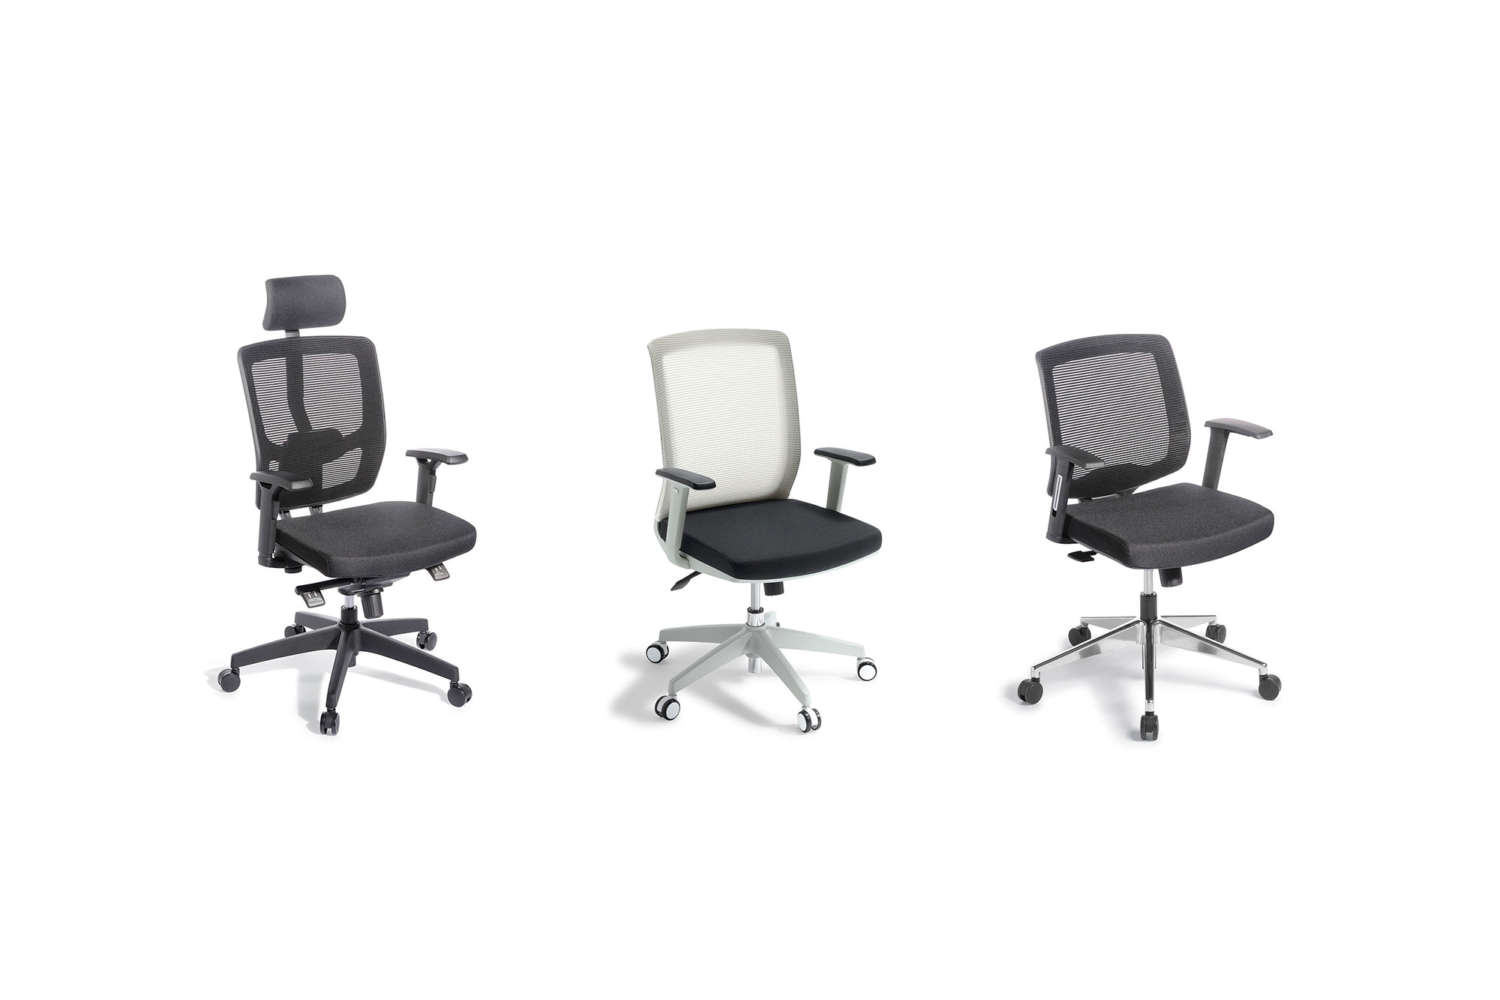 Modern workspace commercial armchairs by Media